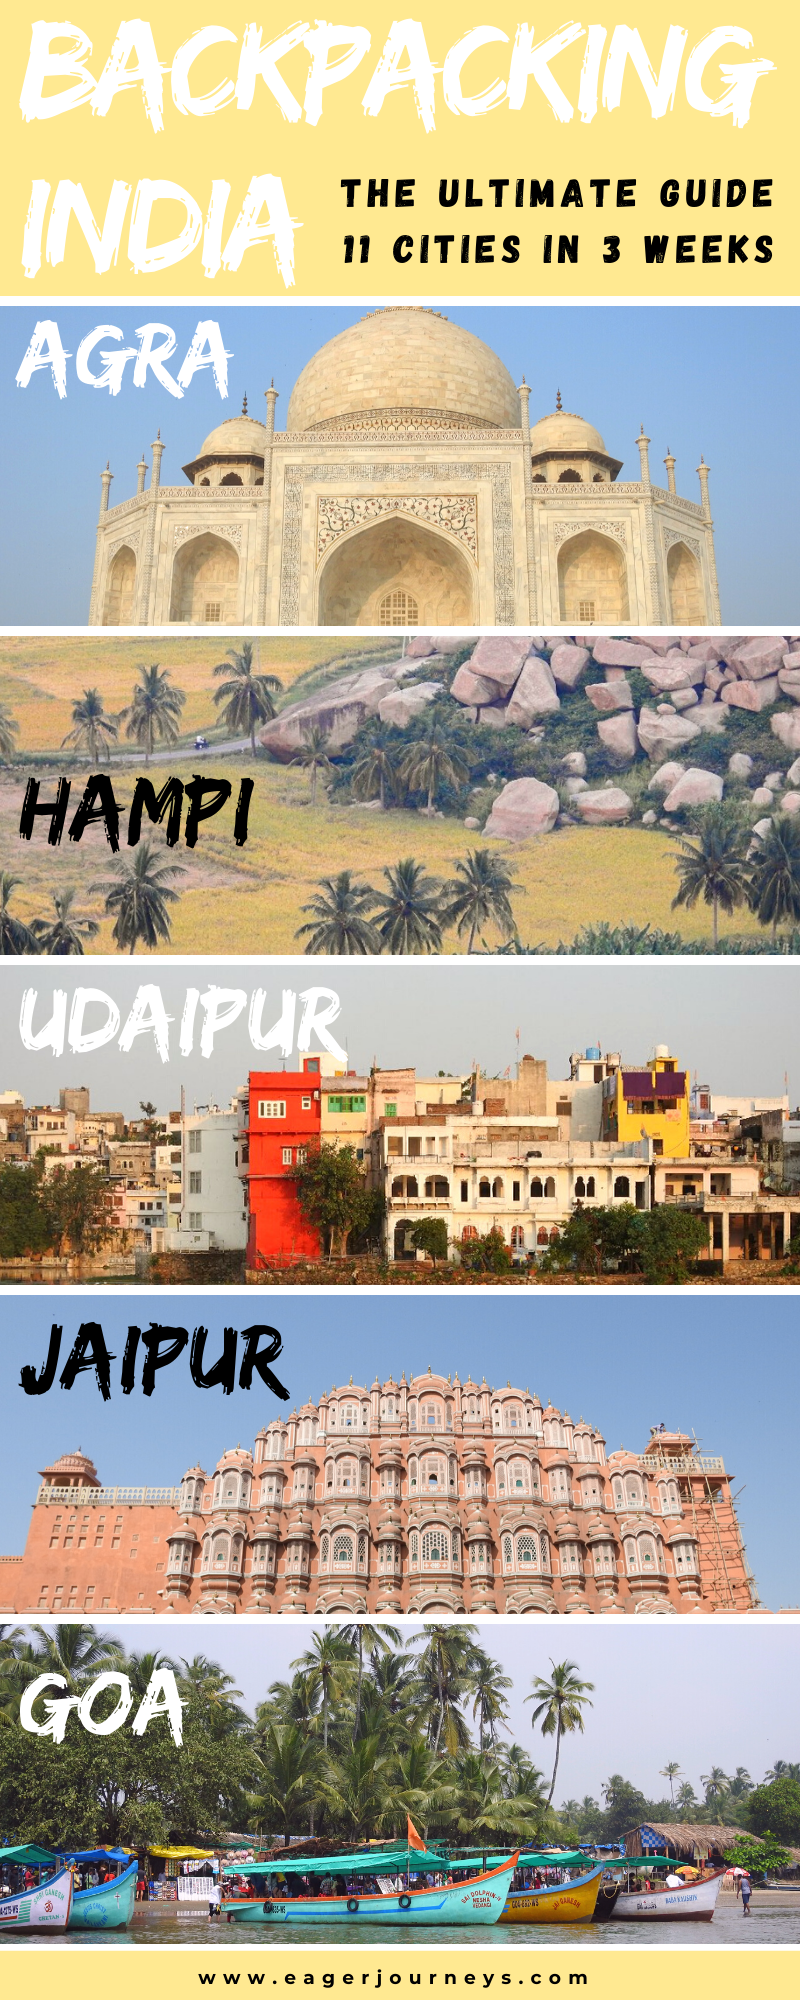 , Backpacking India: 11 cities in 3 weeks, My Travels Blog 2020, My Travels Blog 2020